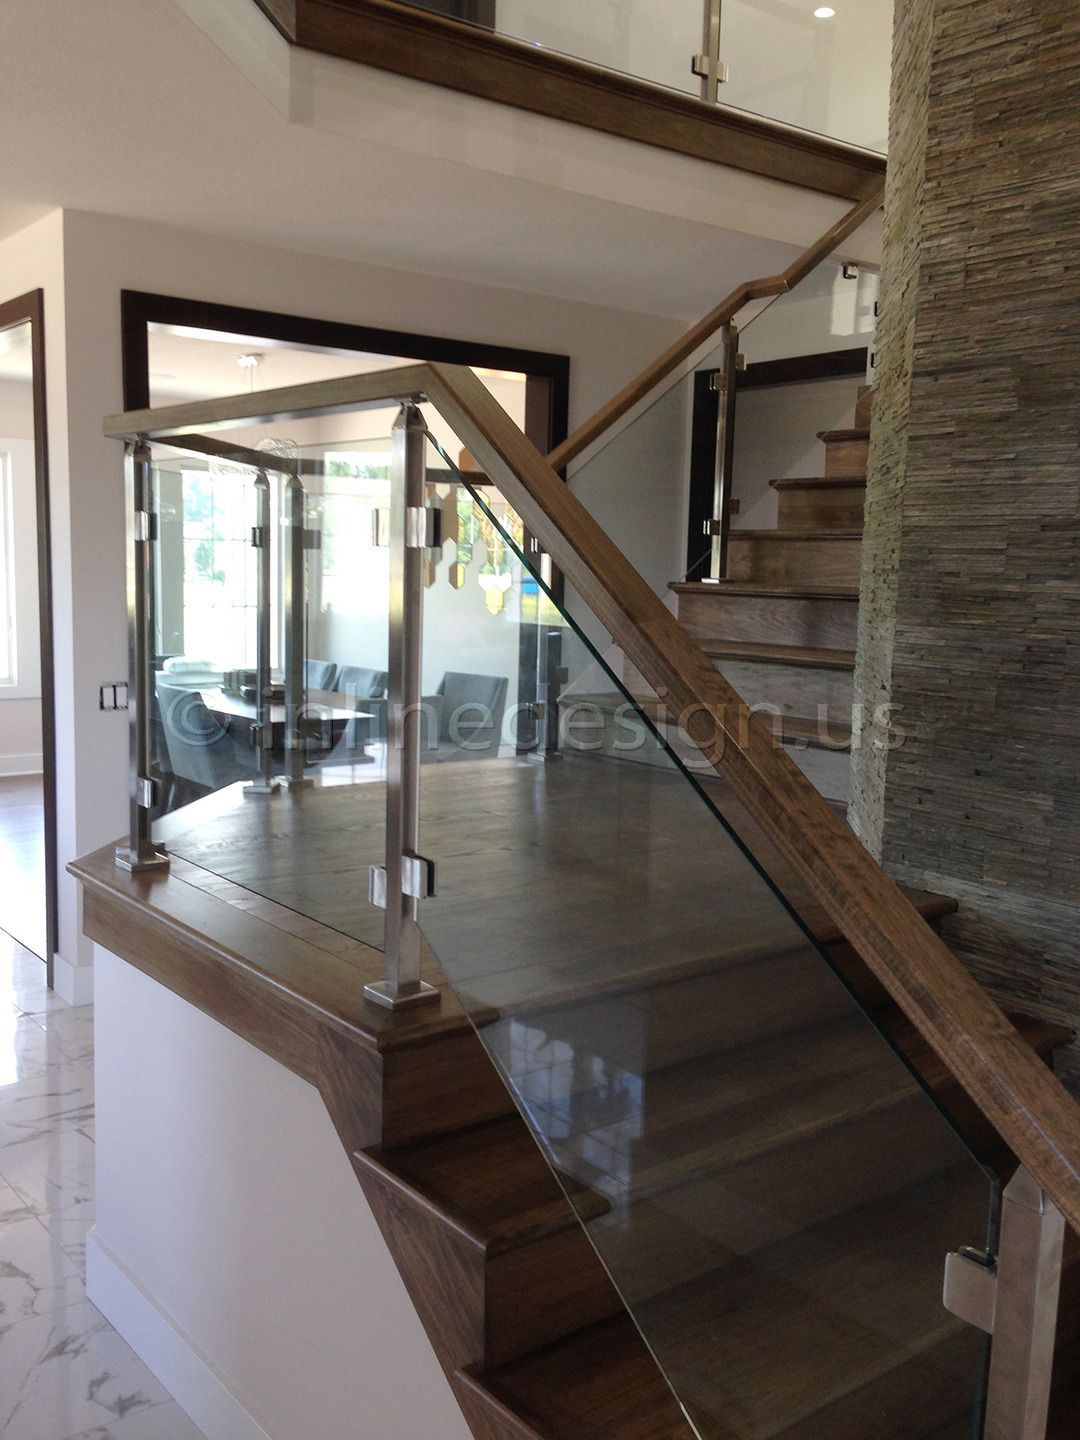 Stainless Steel Glass Railing Stairs Modern Stainless Steel   Stainless Steel Bannister Rails   Staircase Railing   Wood   Brushed Stainless   Railing Kits   Balcony